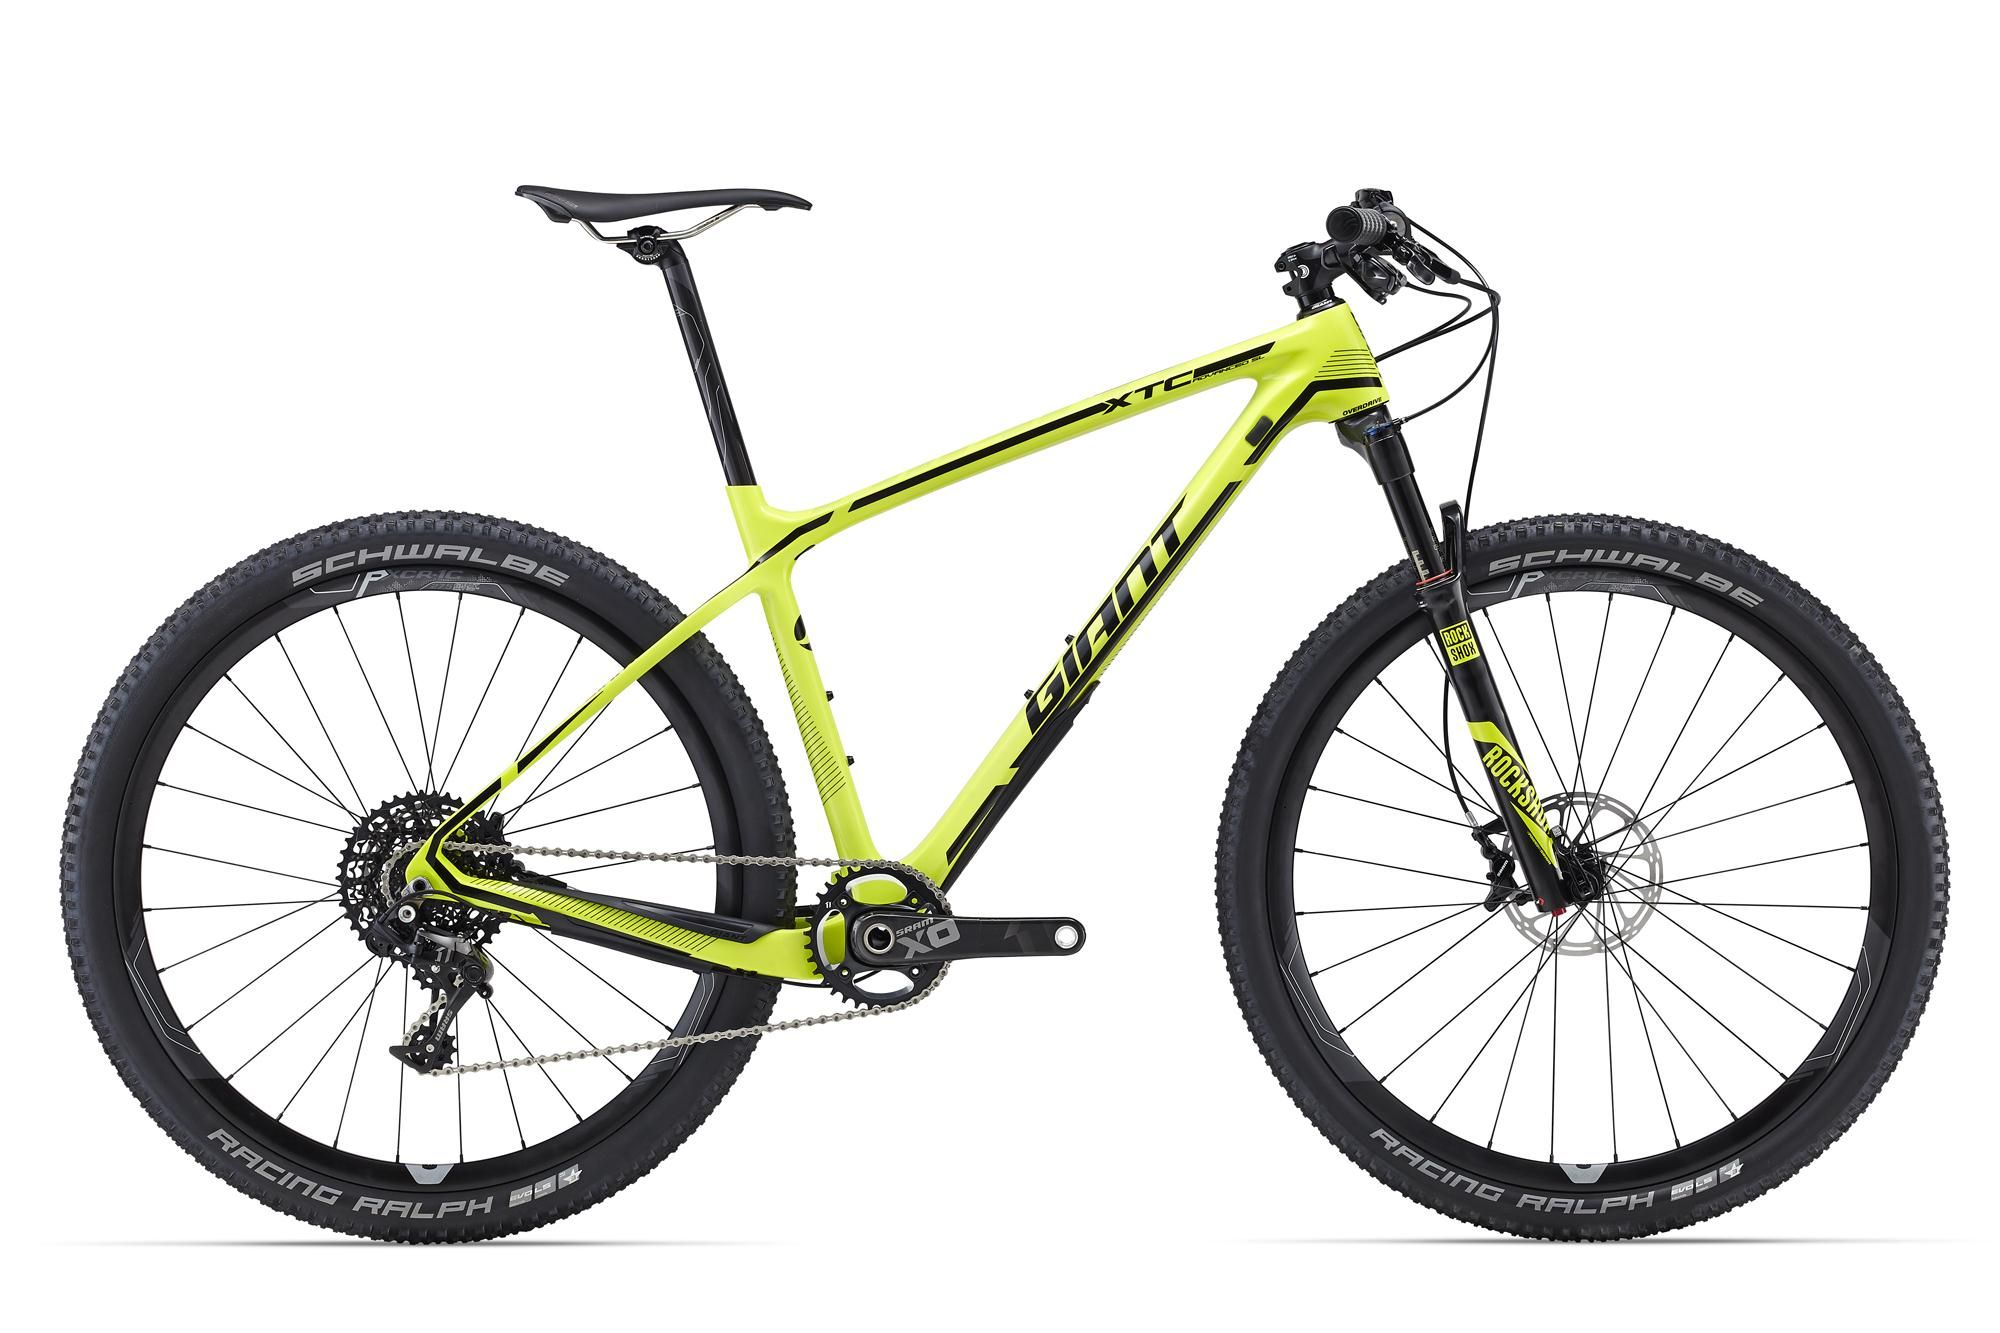 Велосипед Giant XtC Advanced SL 27.5 1 2016 велосипед giant anthem advanced 27 5 2 2016